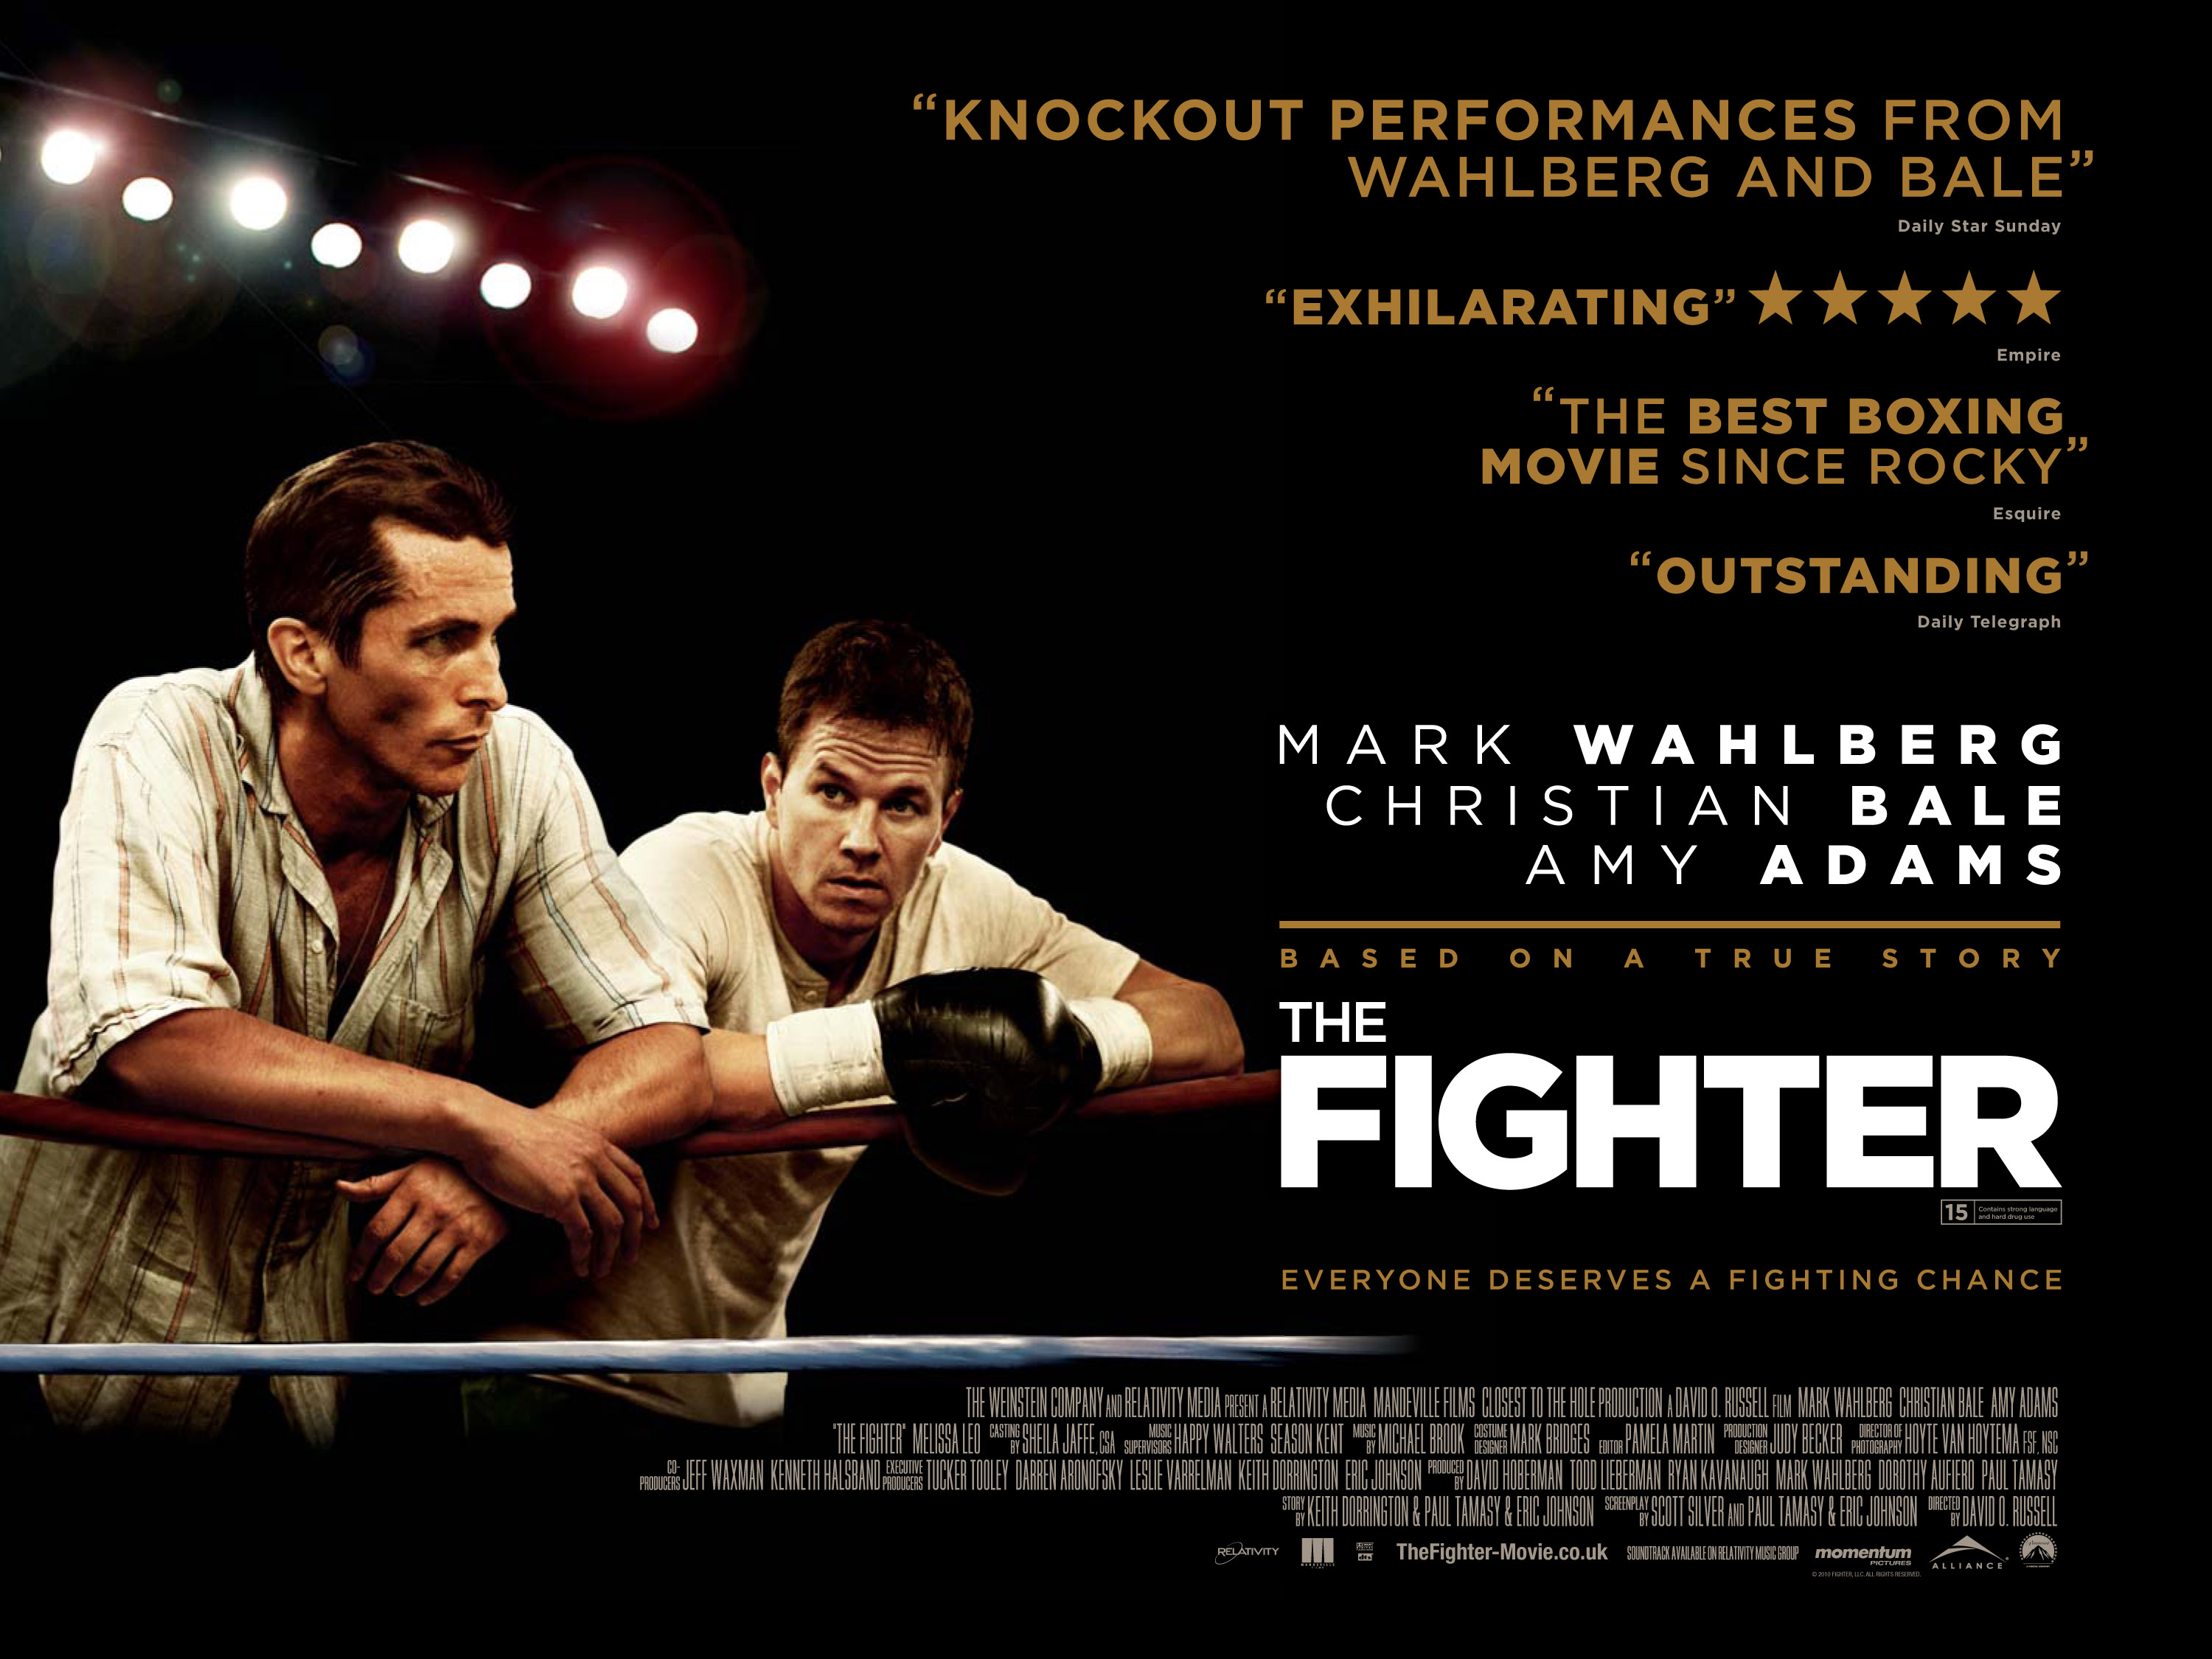 The Fighter poster.